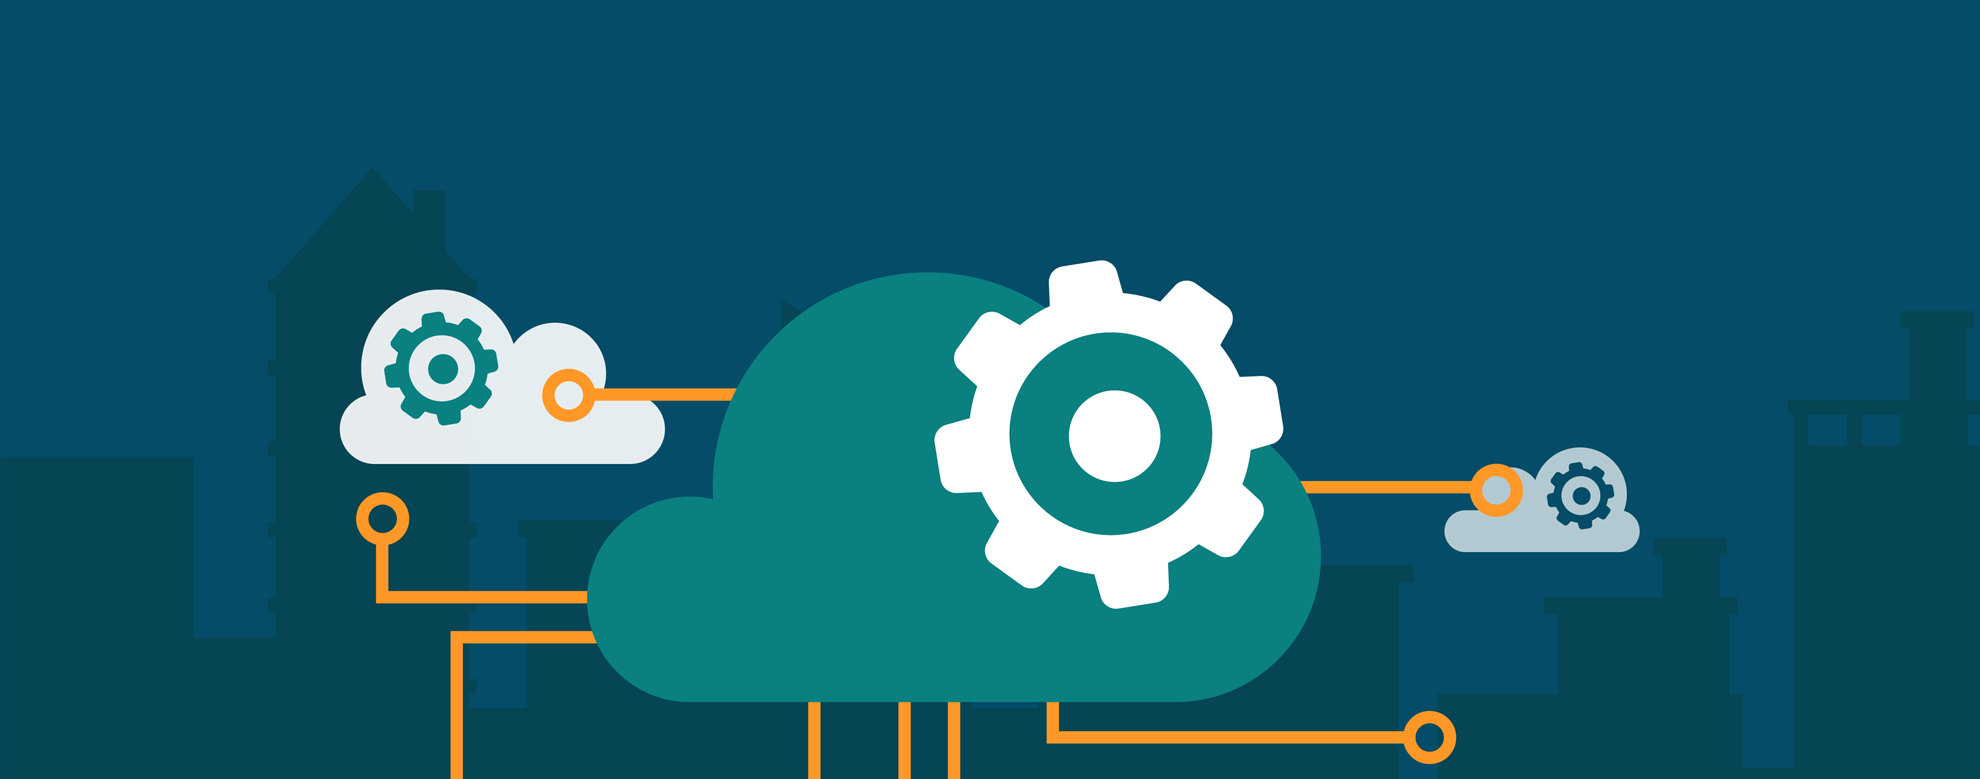 creating-cloud-strategy-header.png